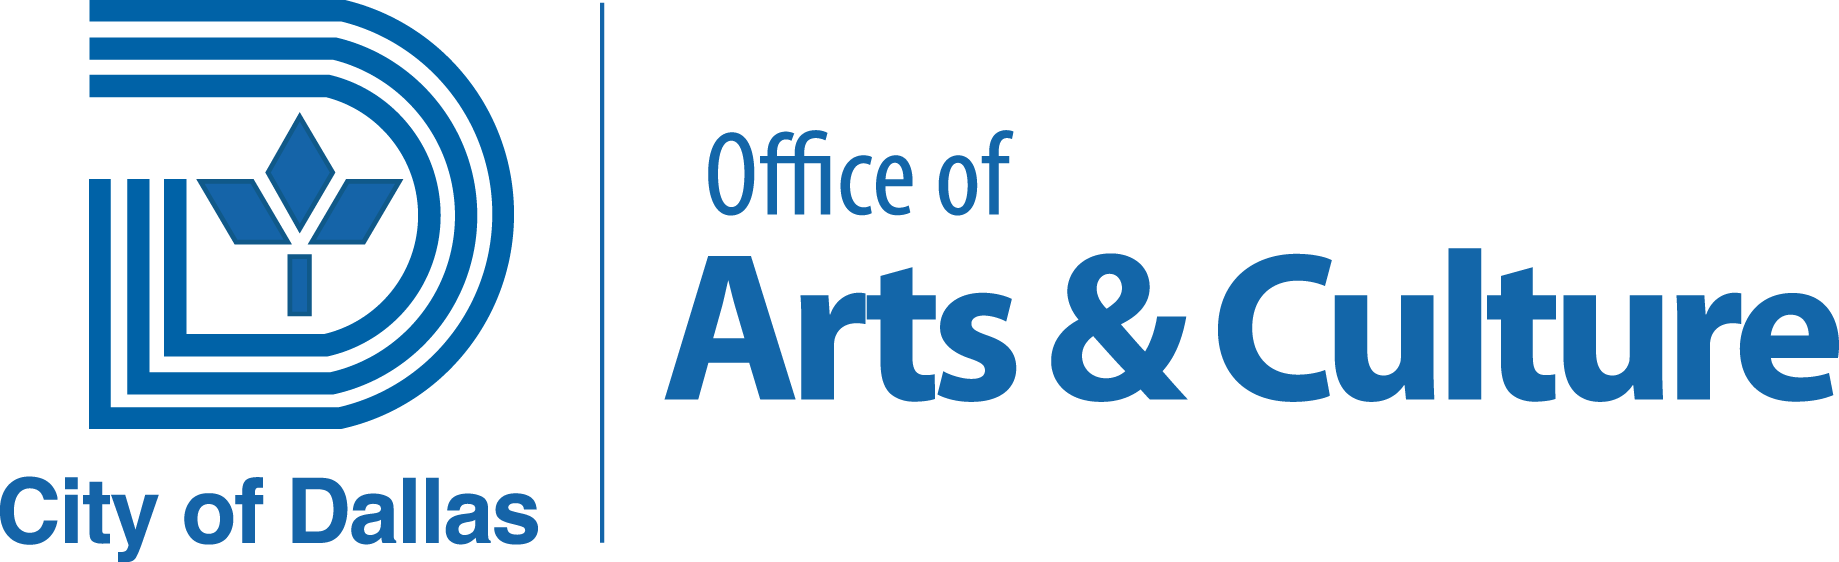 Logo for City of Dallas - Office of Arts & Culture